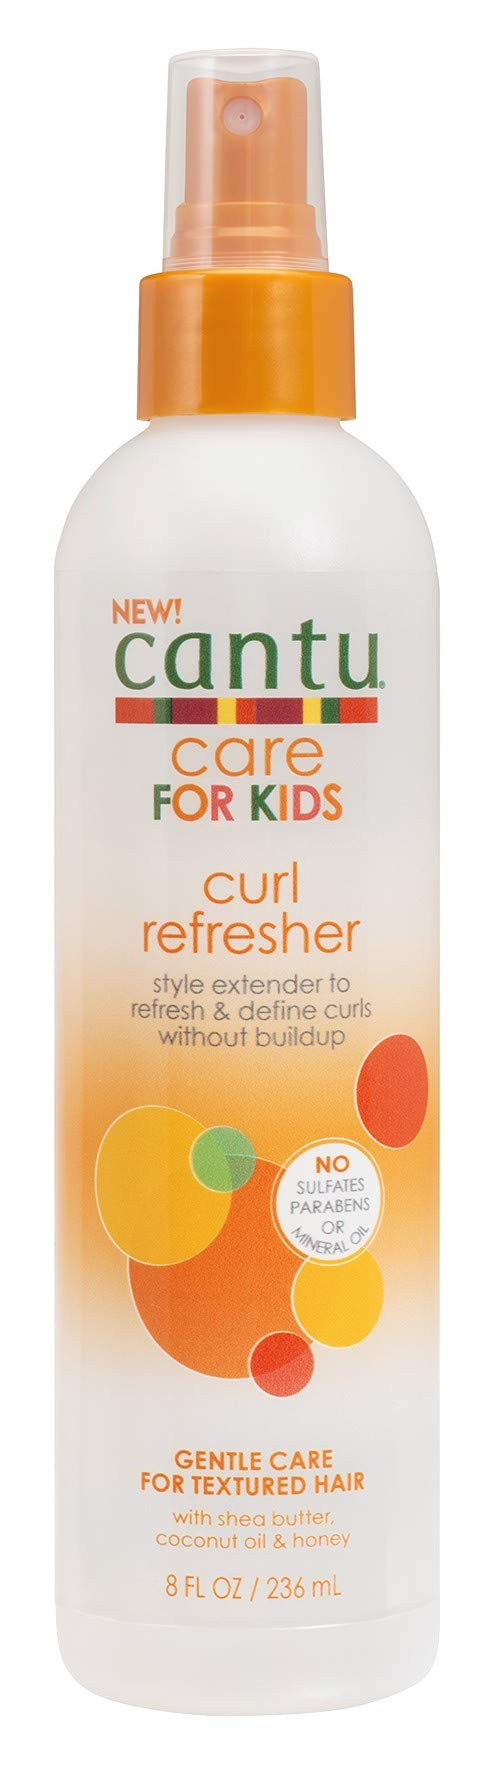 Cantu Care For Kids Curl Refresher 8 Ounce (236ml)